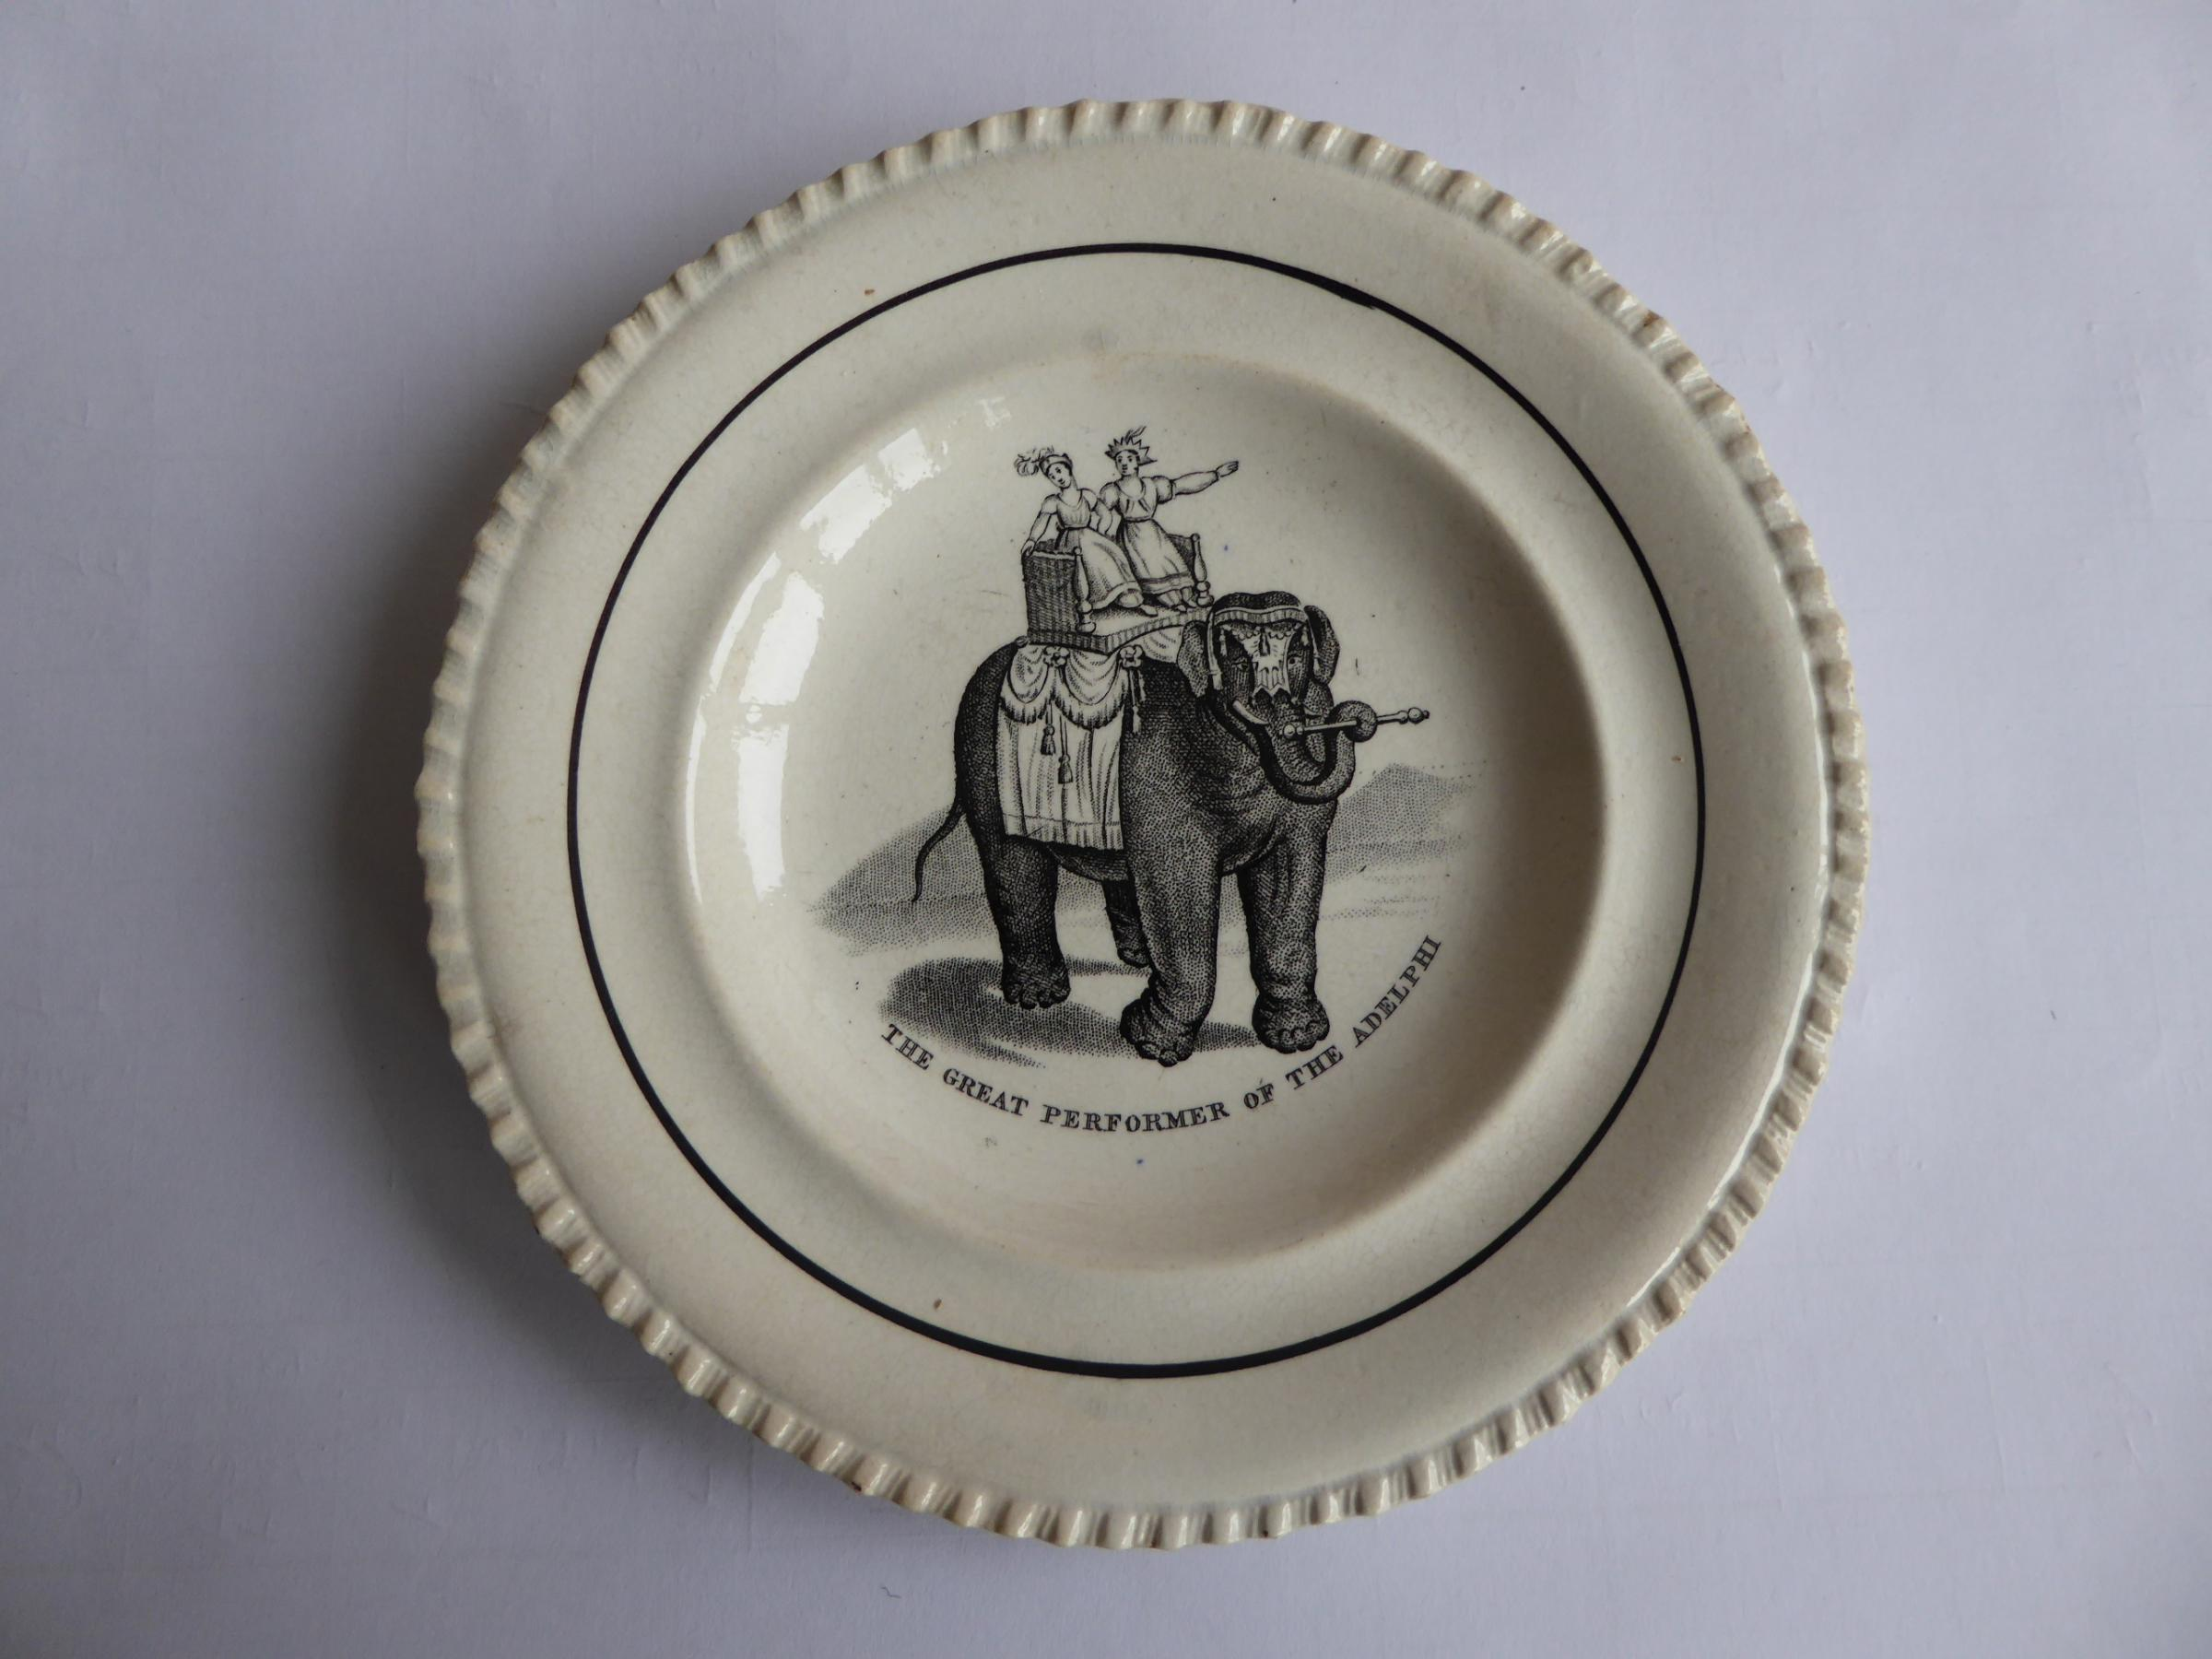 A child's plate featuring Mademoiselle D'Jeck is expected to attract some interest at Carmarthen Antqiues and Flea Market this month